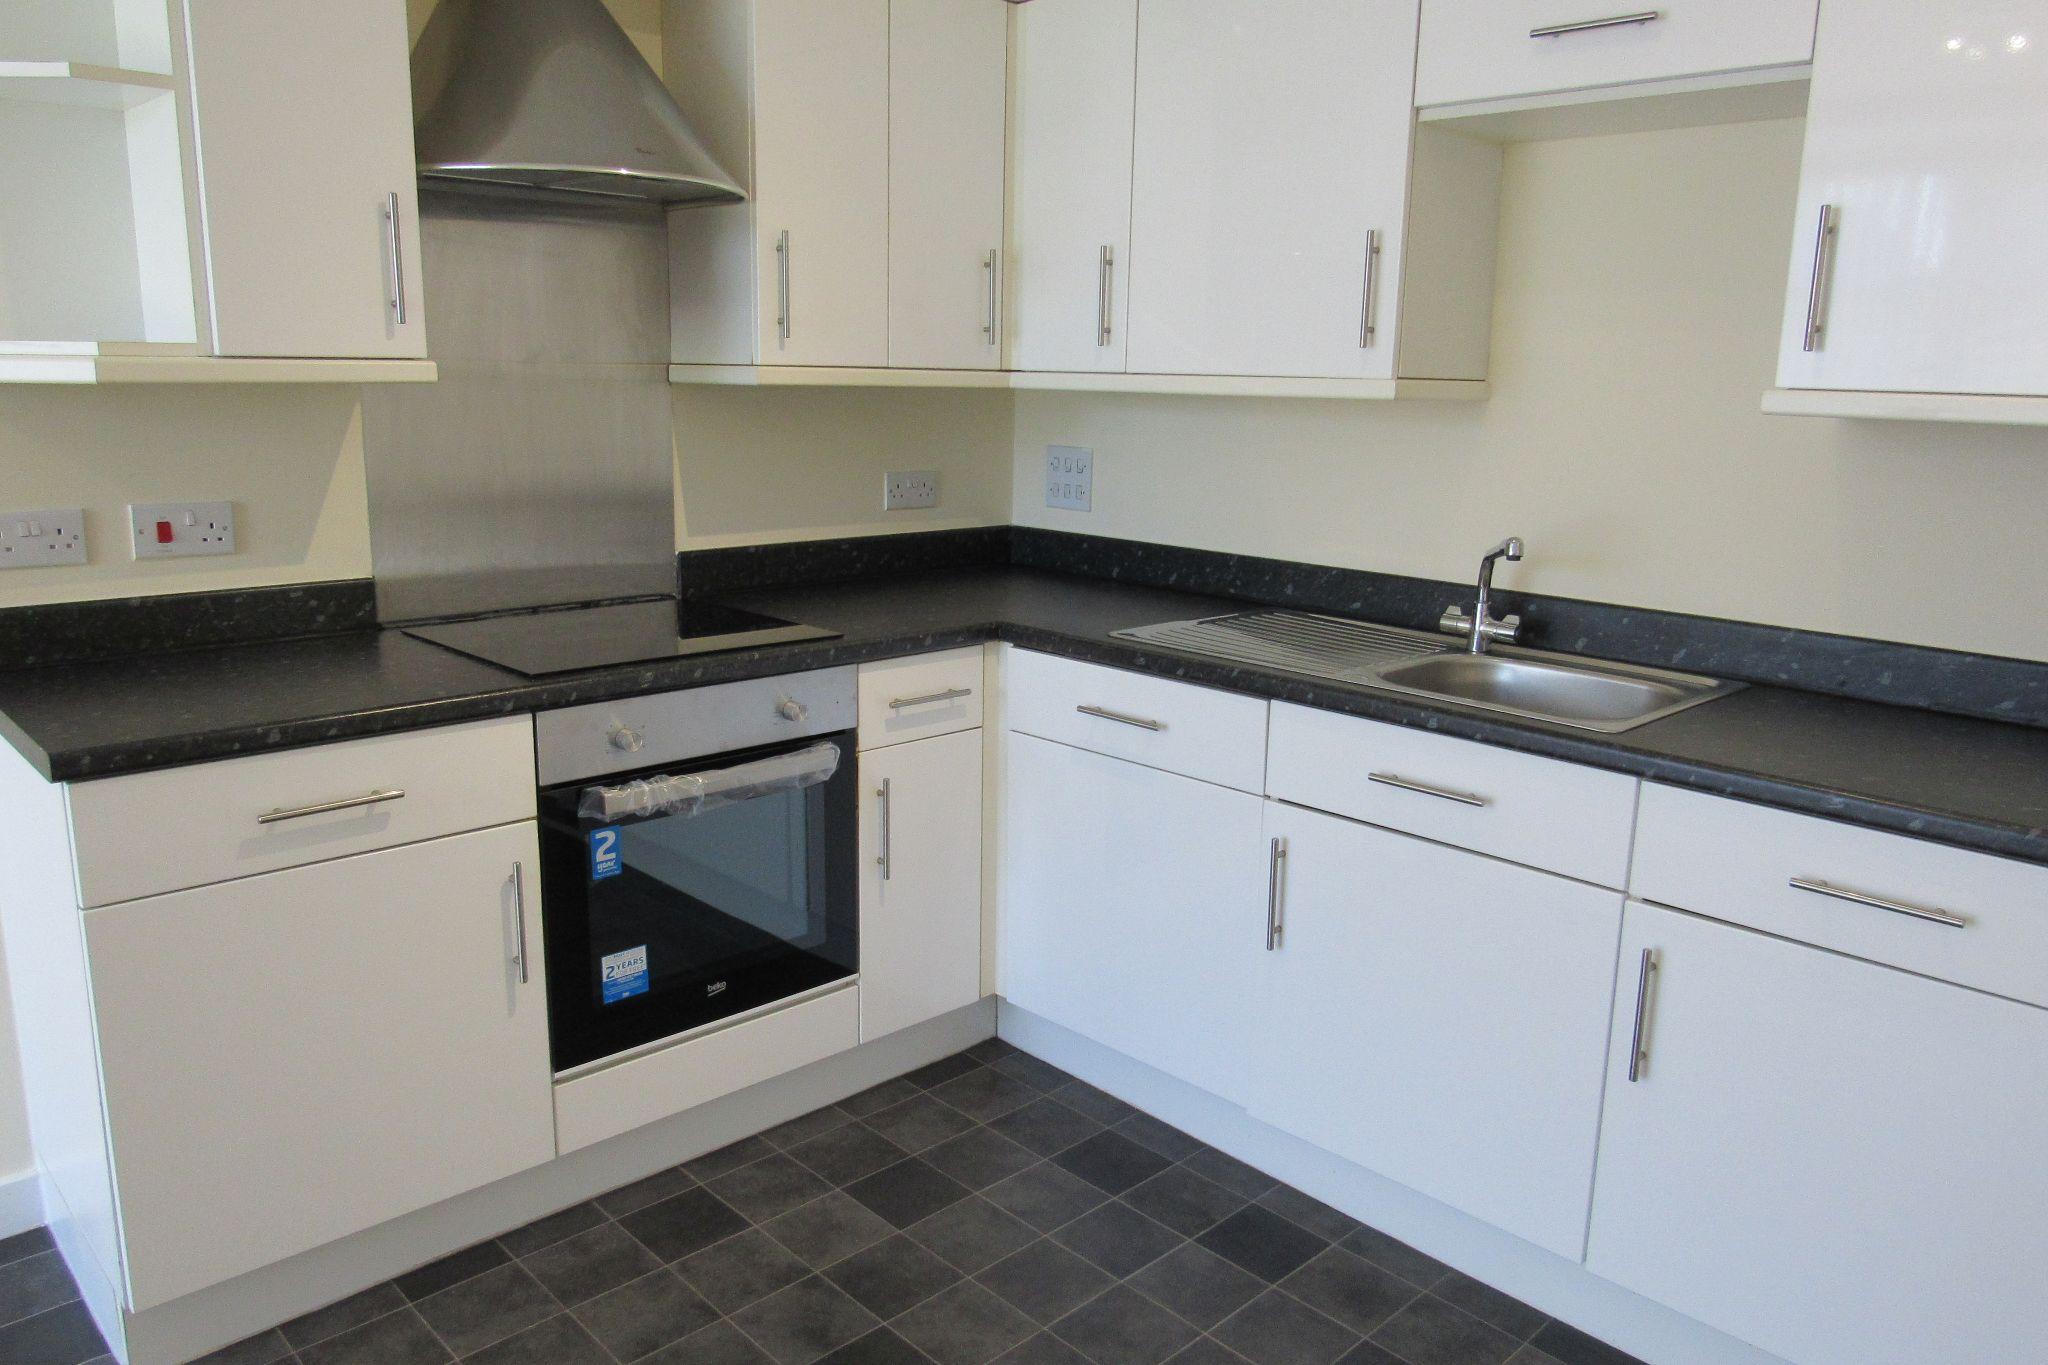 2 bedroom apartment flat/apartment For Sale in Manchester - Photograph 6.